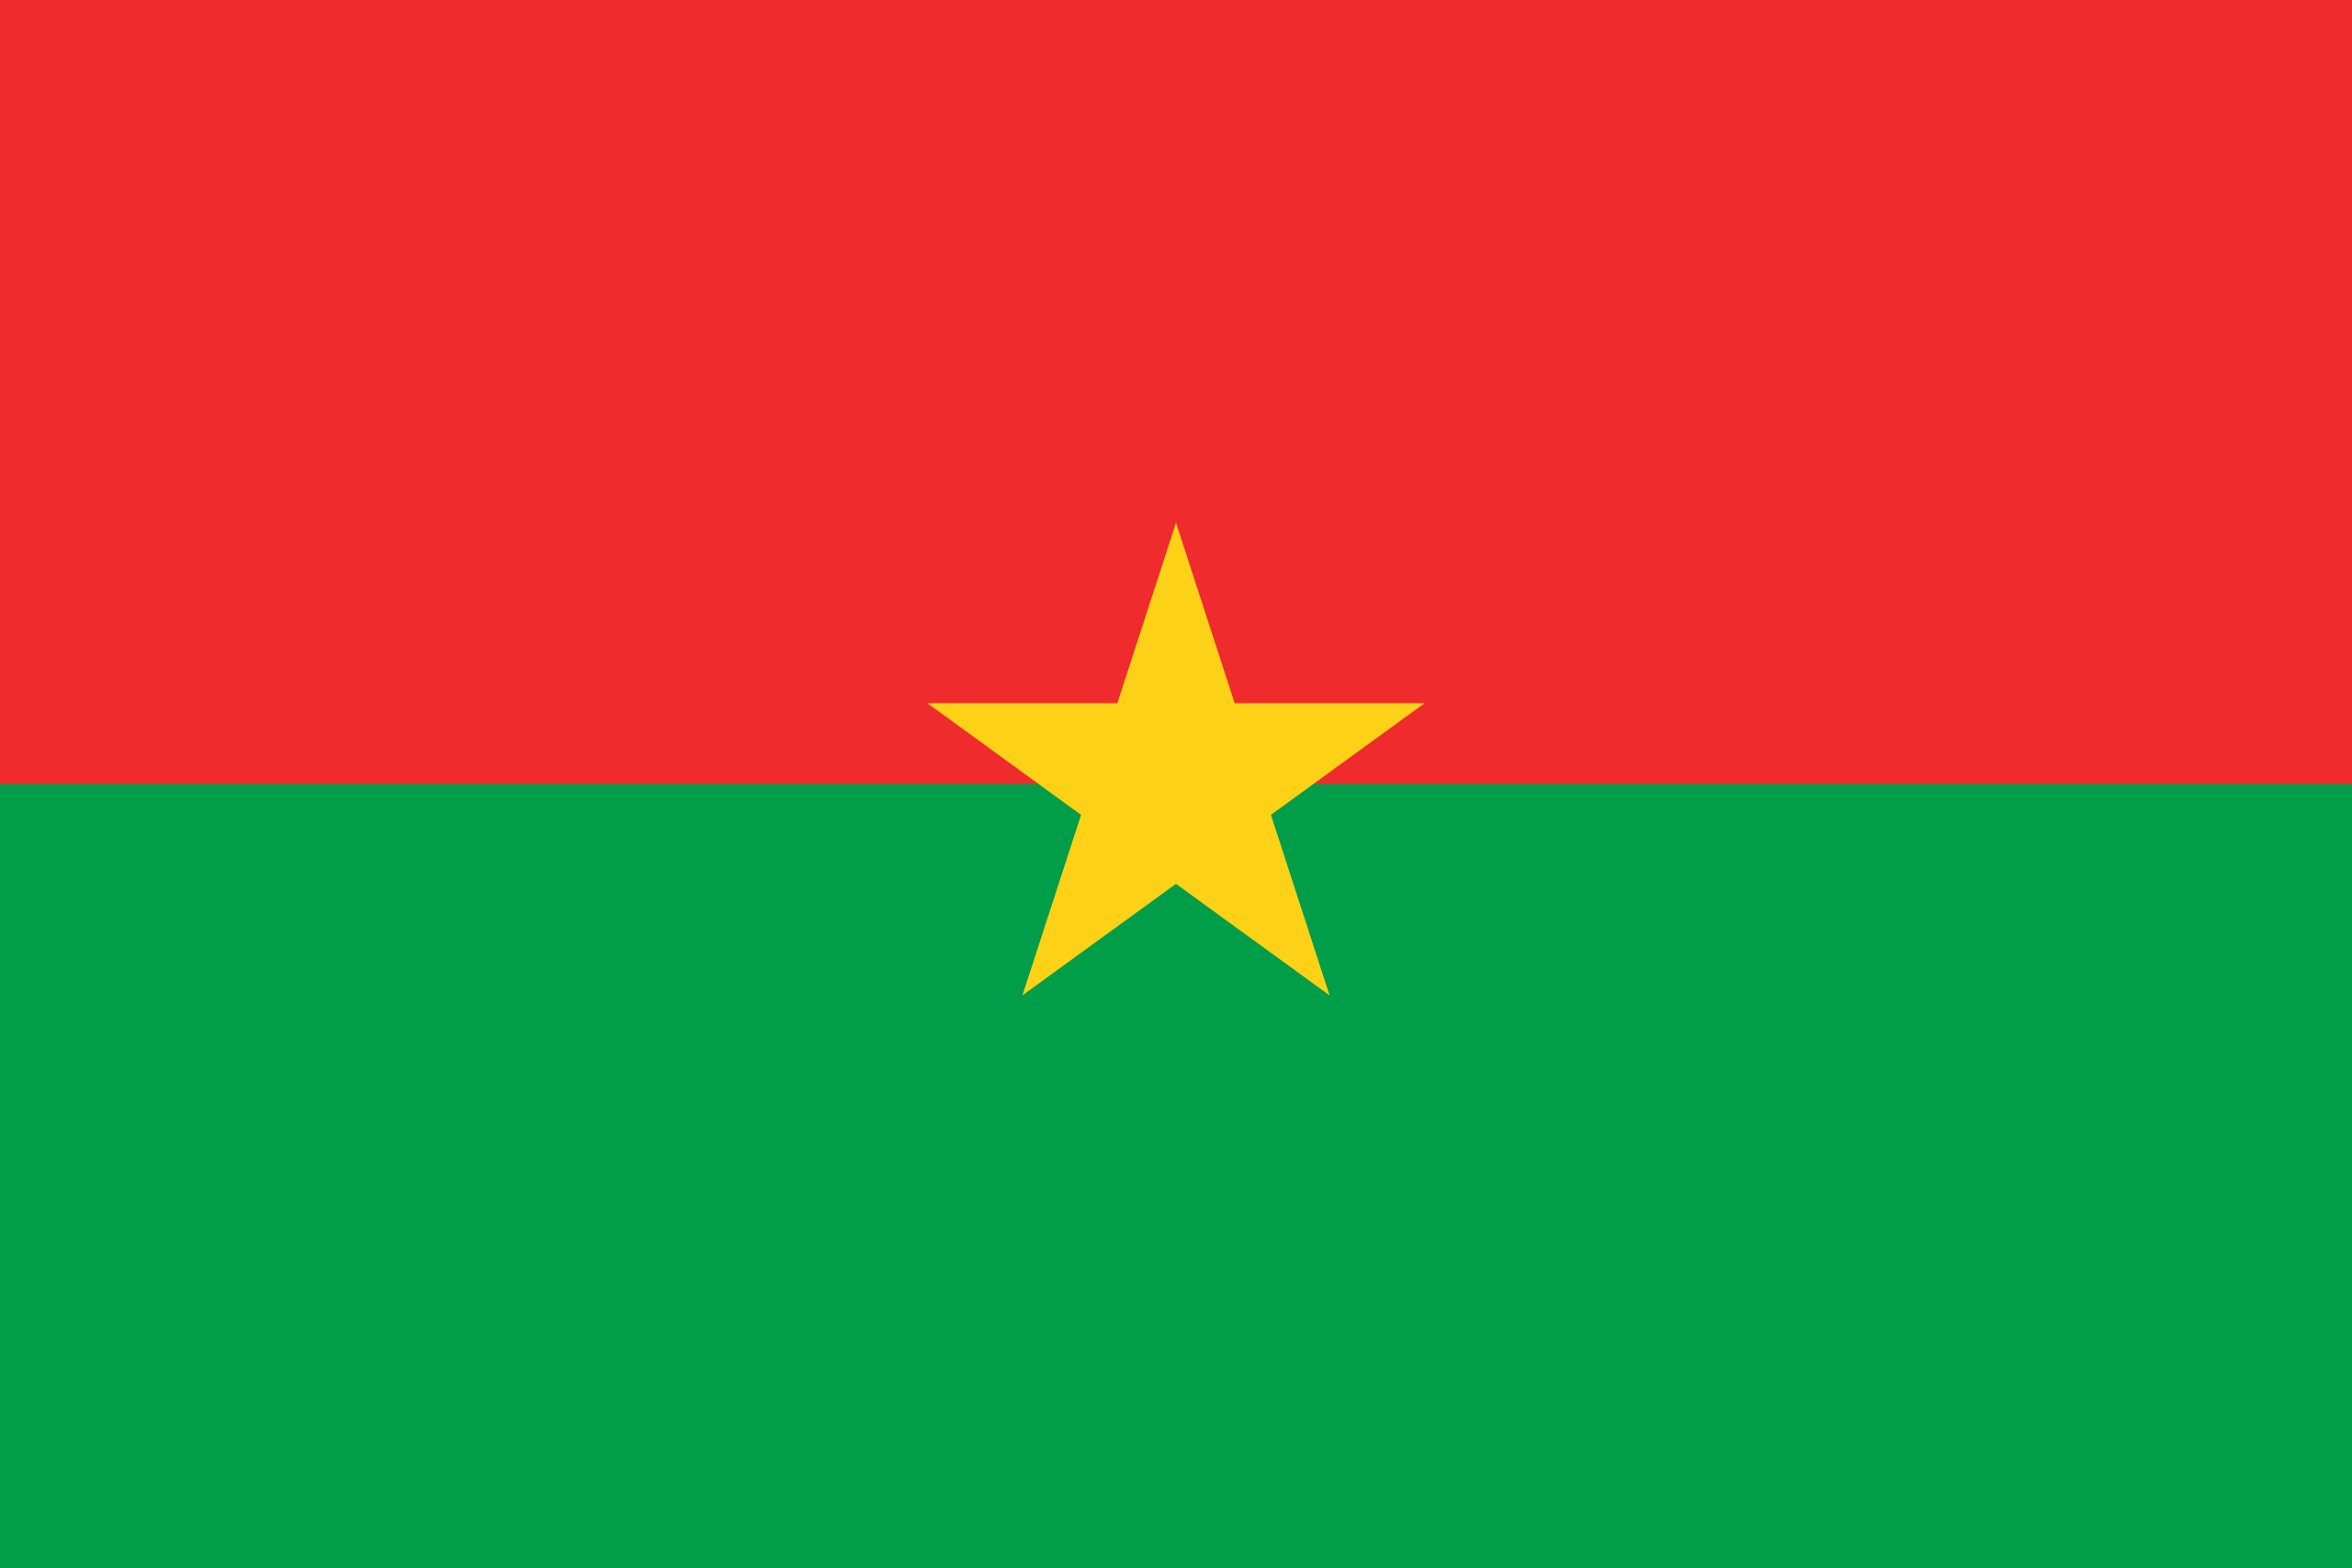 EMBASSY AND CONSULATE OF BURKINA FASO